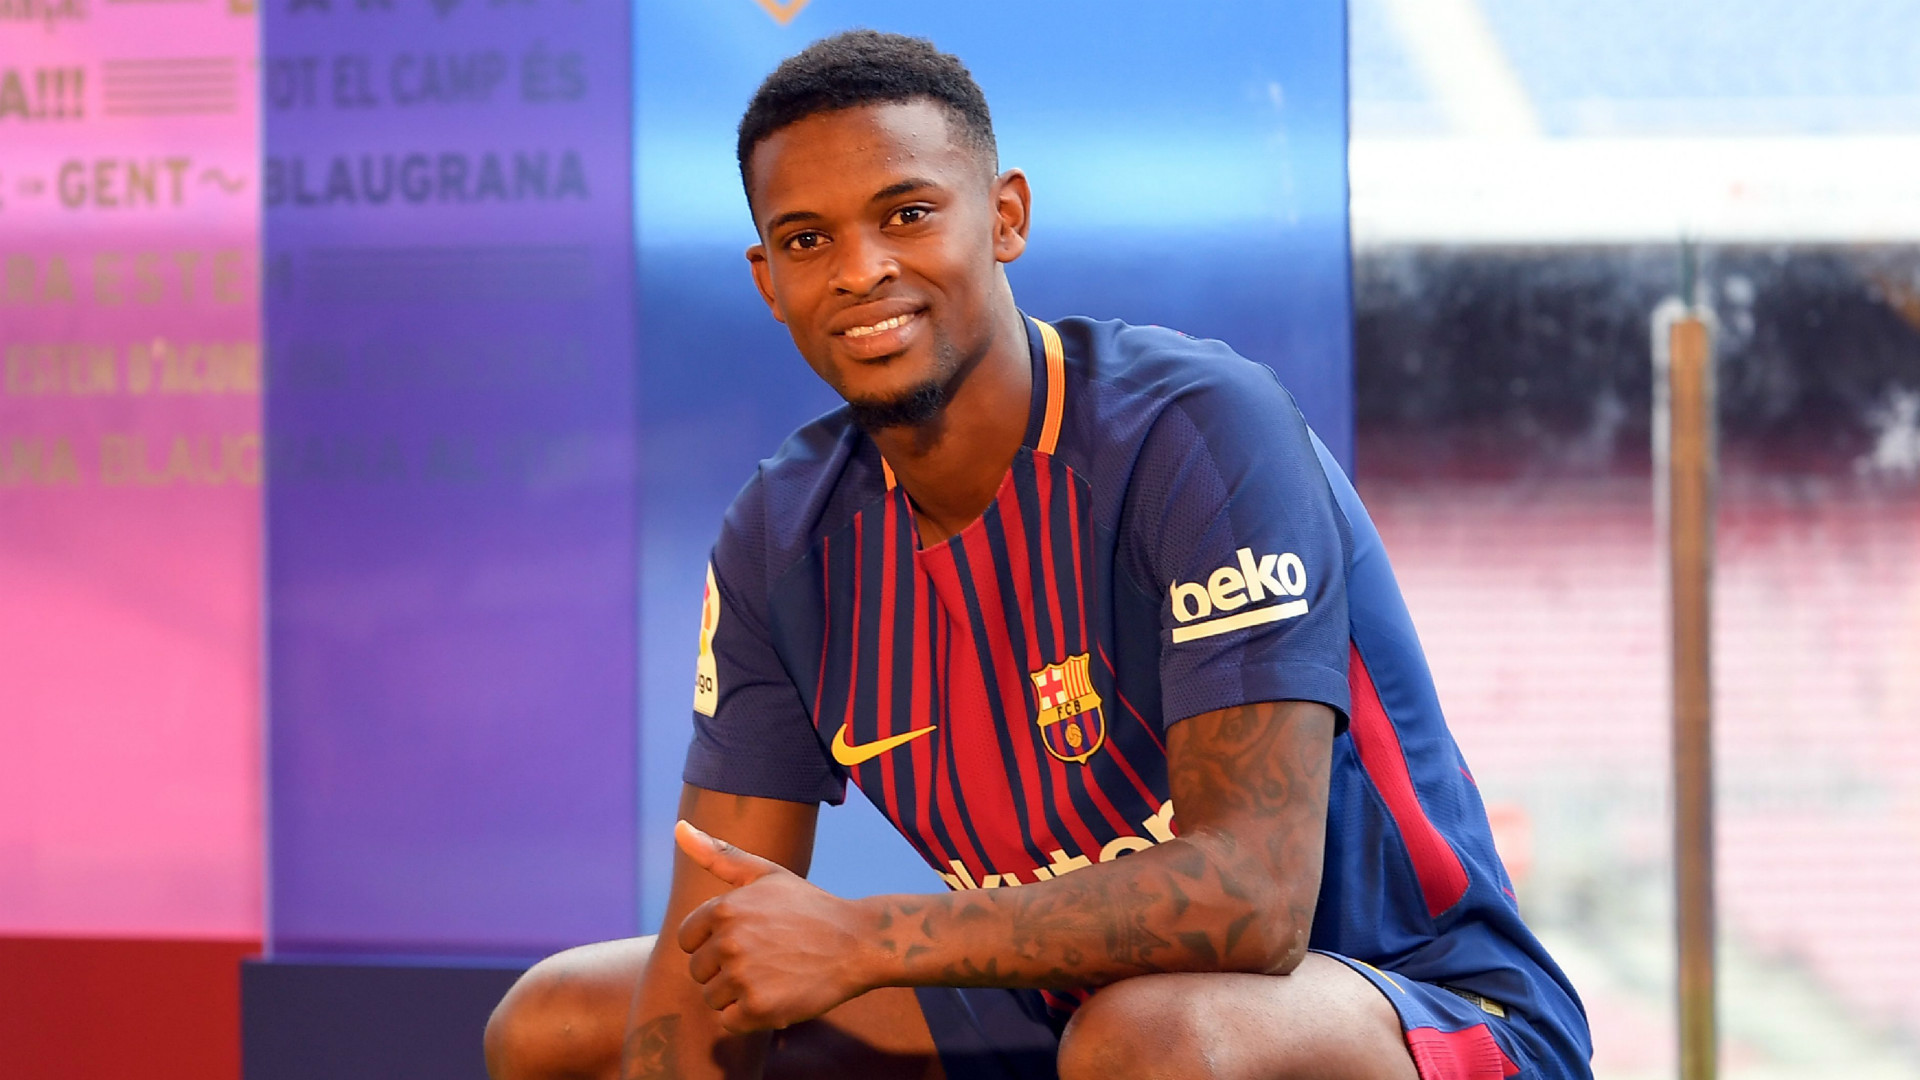 Barca and semedo contract talks broken down - Bóng Đá